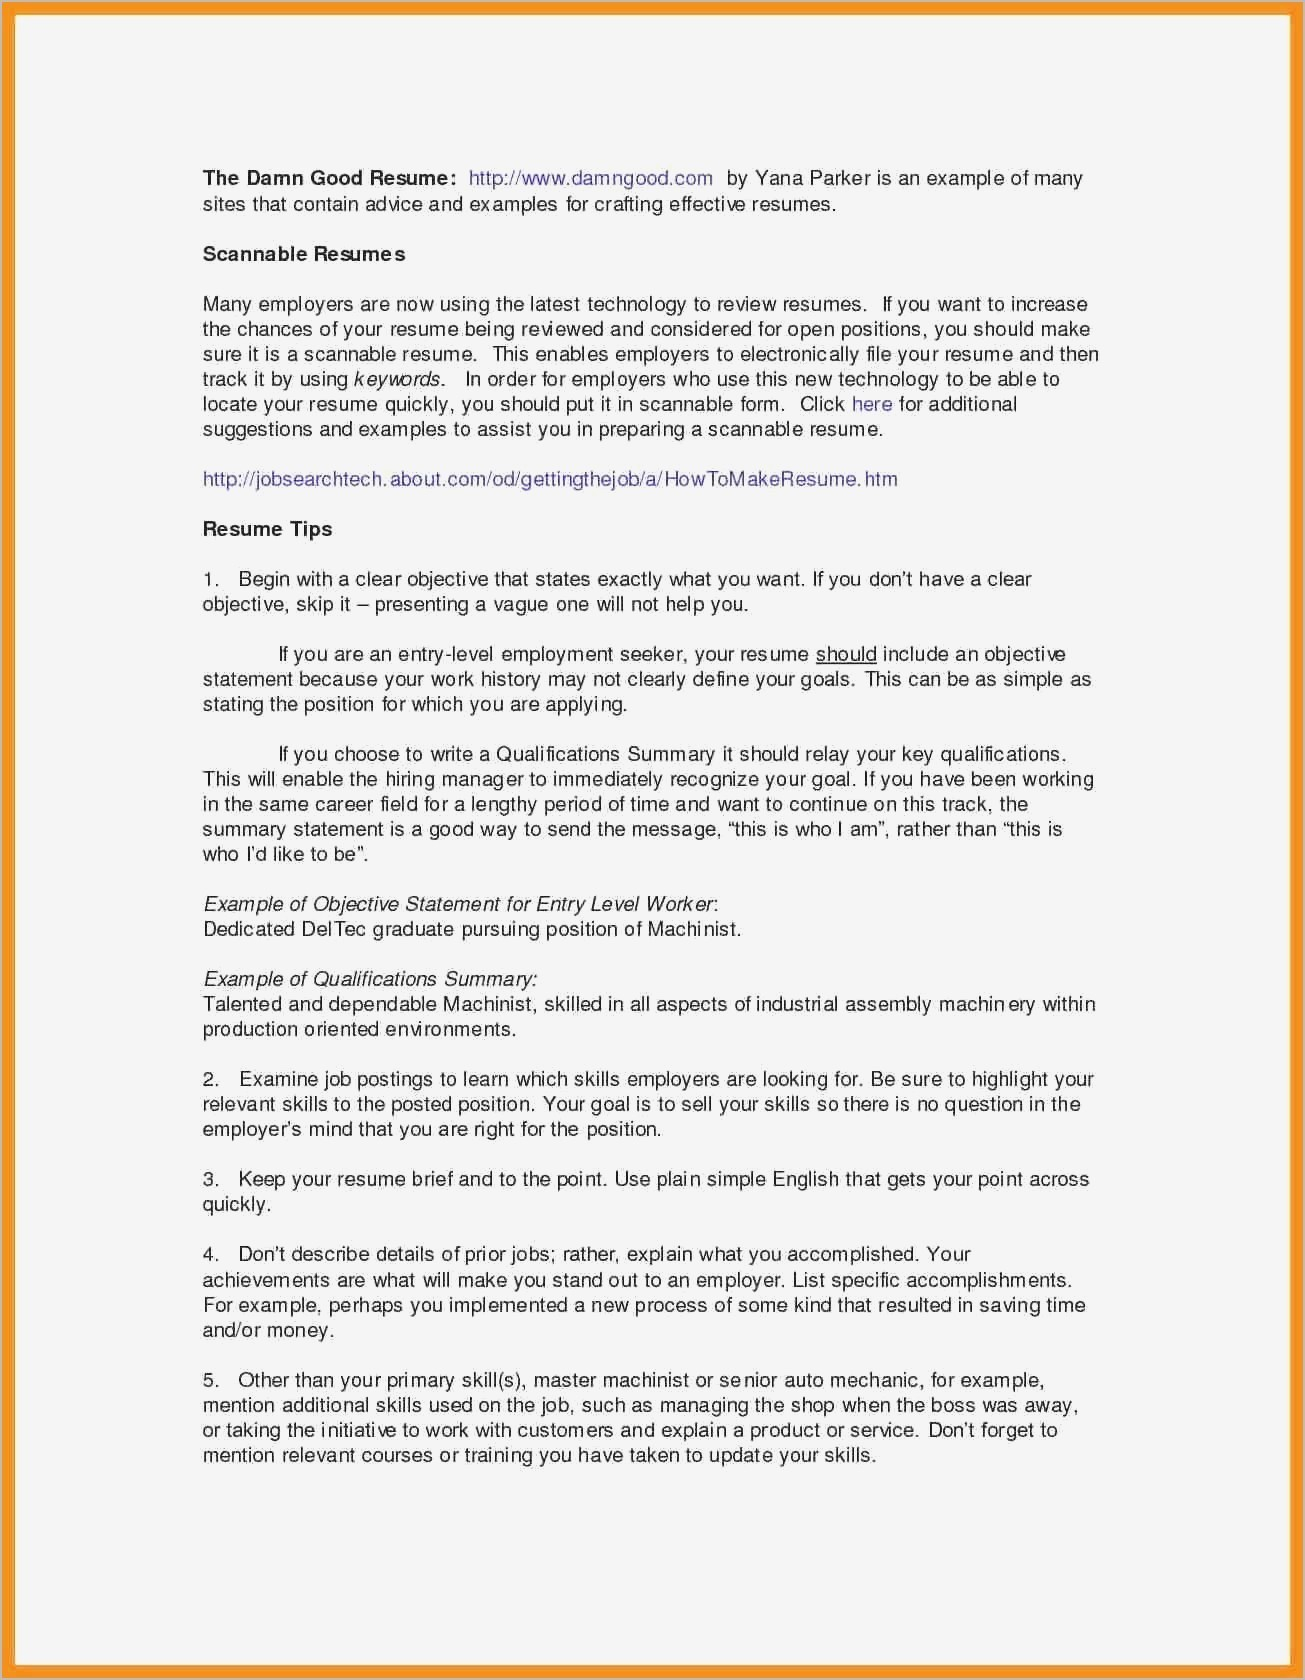 resume summary section example-Ac plishments for A Resume Elegant Lovely Resume Skills for Customer Service Ideas Skills Section 20 15-r